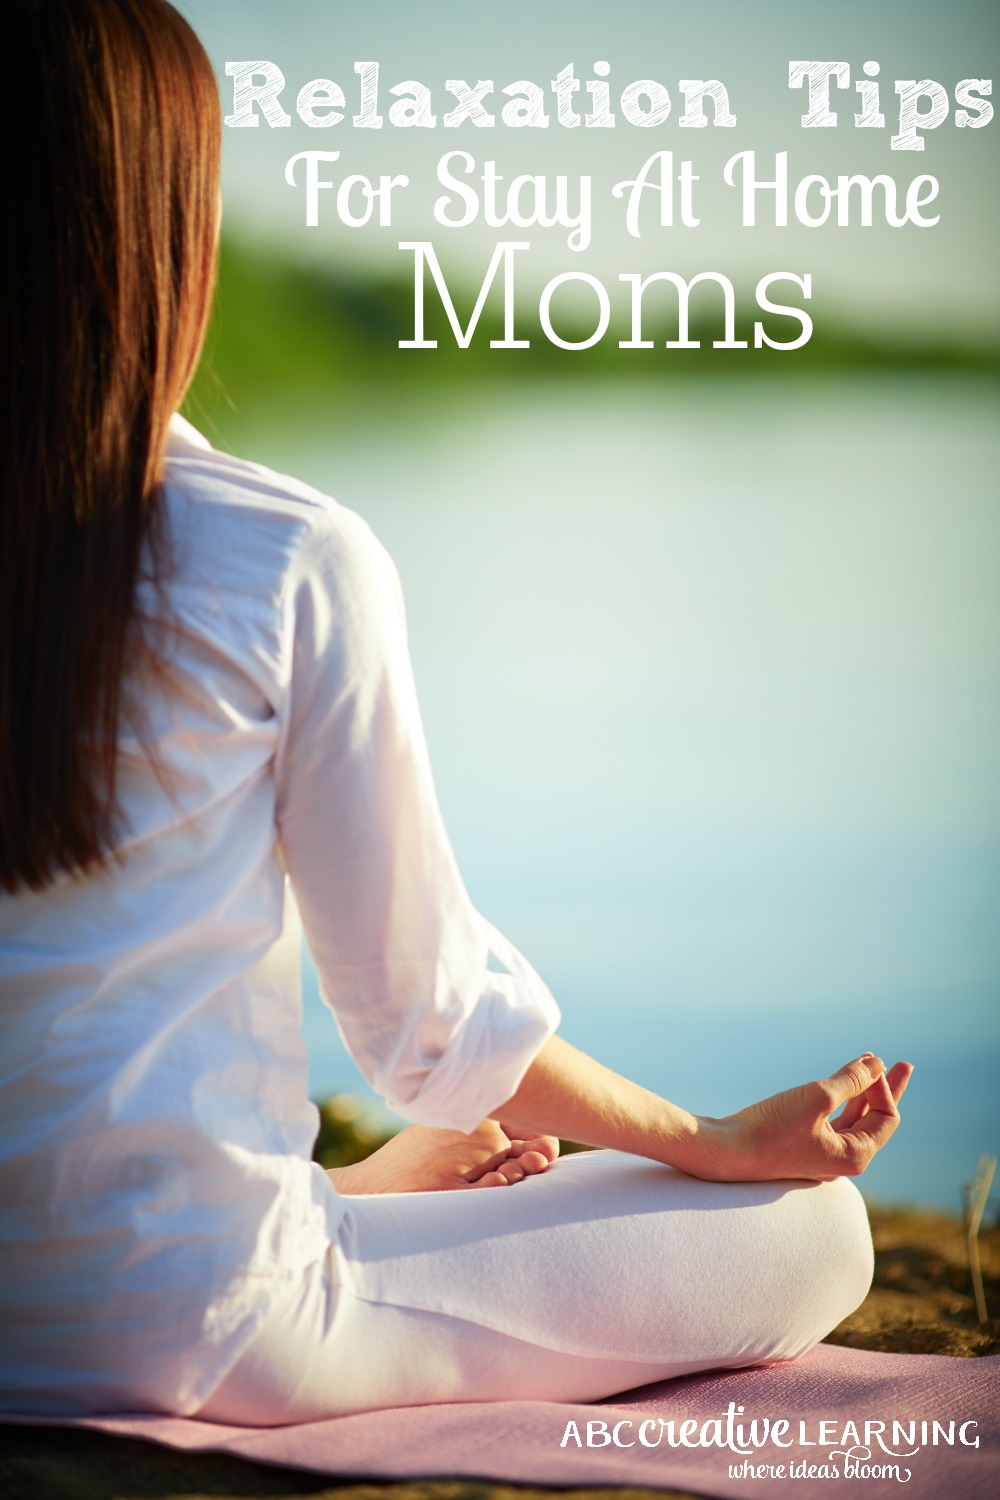 These Relaxation Tips for Stay At Home Moms fit perfectly into a busy lifestyle. While not all will work for your situation, there are many that will be easy for you to make happen to help you relax and feel more comfortable and happy each day. Being a stay at home mom can be a huge blessing, but it also comes with many struggles and long days. Self care is important to make you a better wife and mother. Relaxation Tips For Stay At Home Moms - abccreativelearning.com